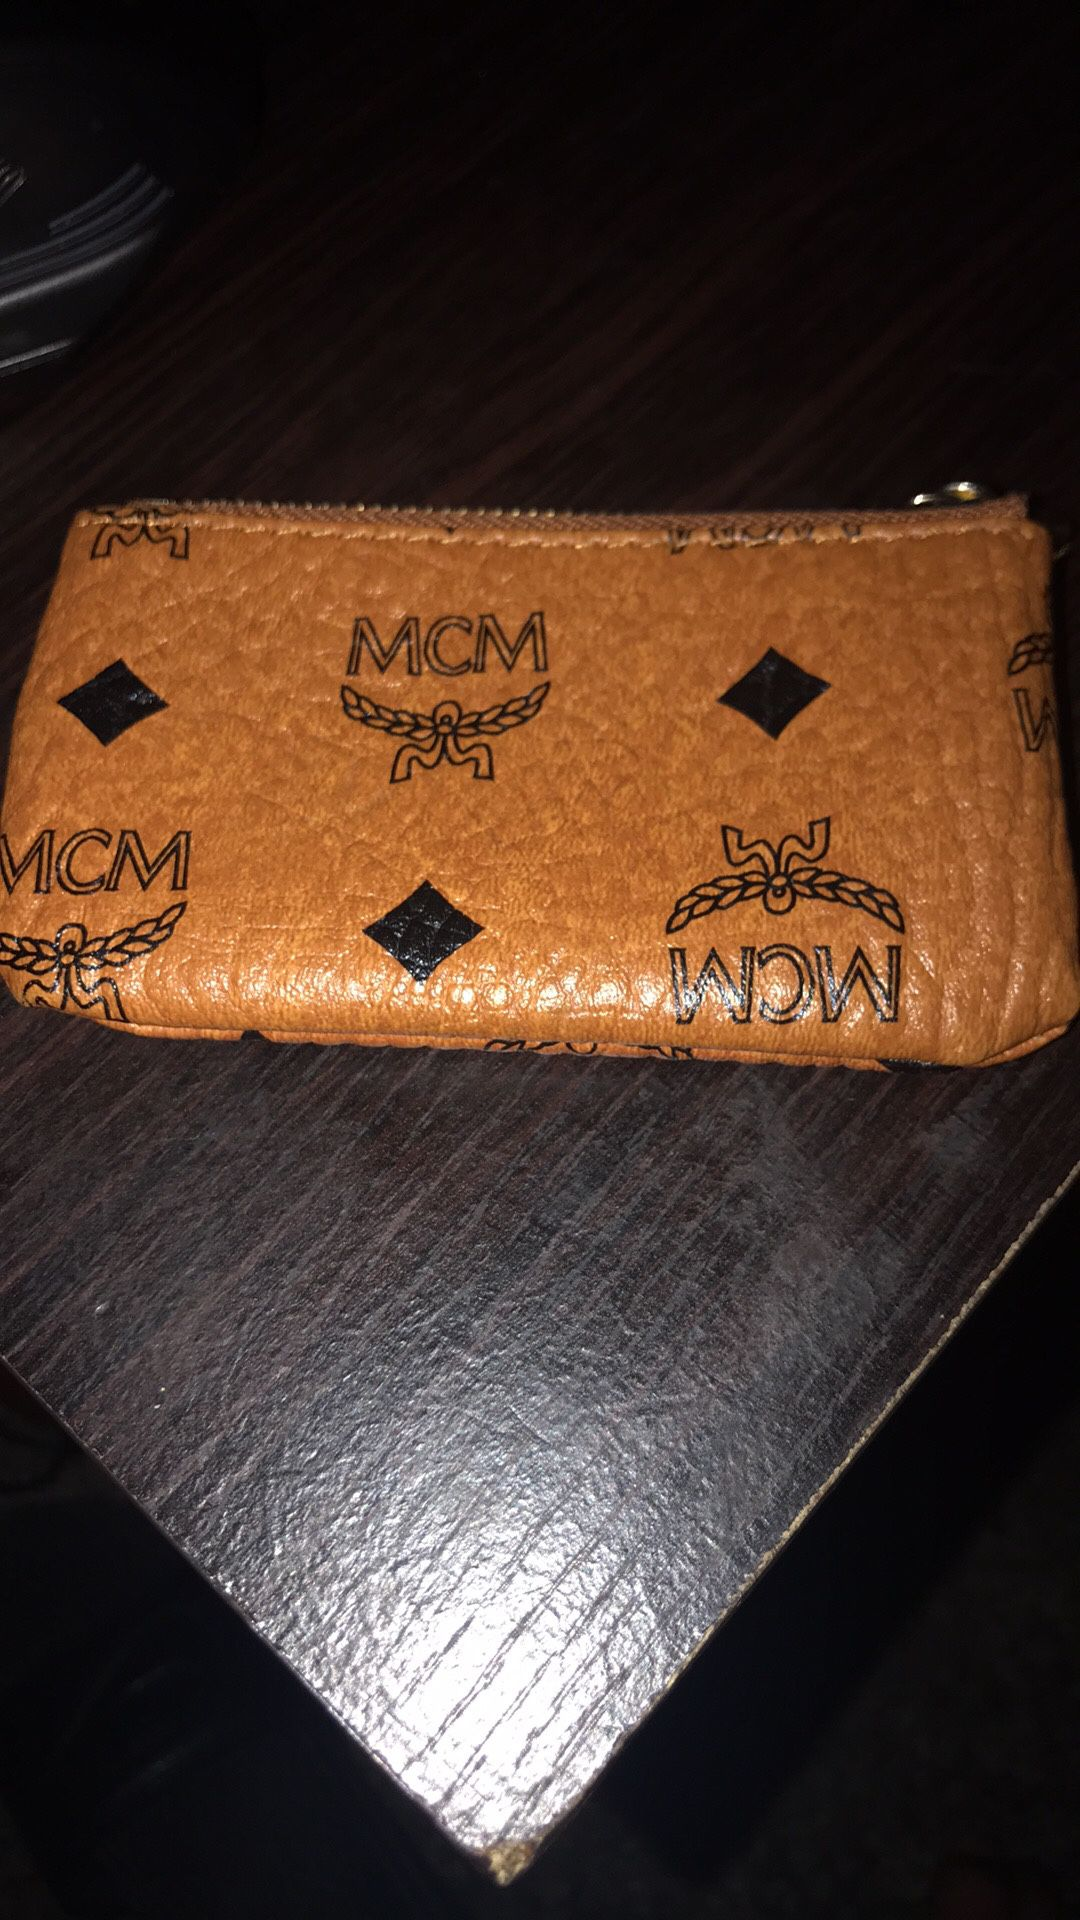 mcm coin / card wallet